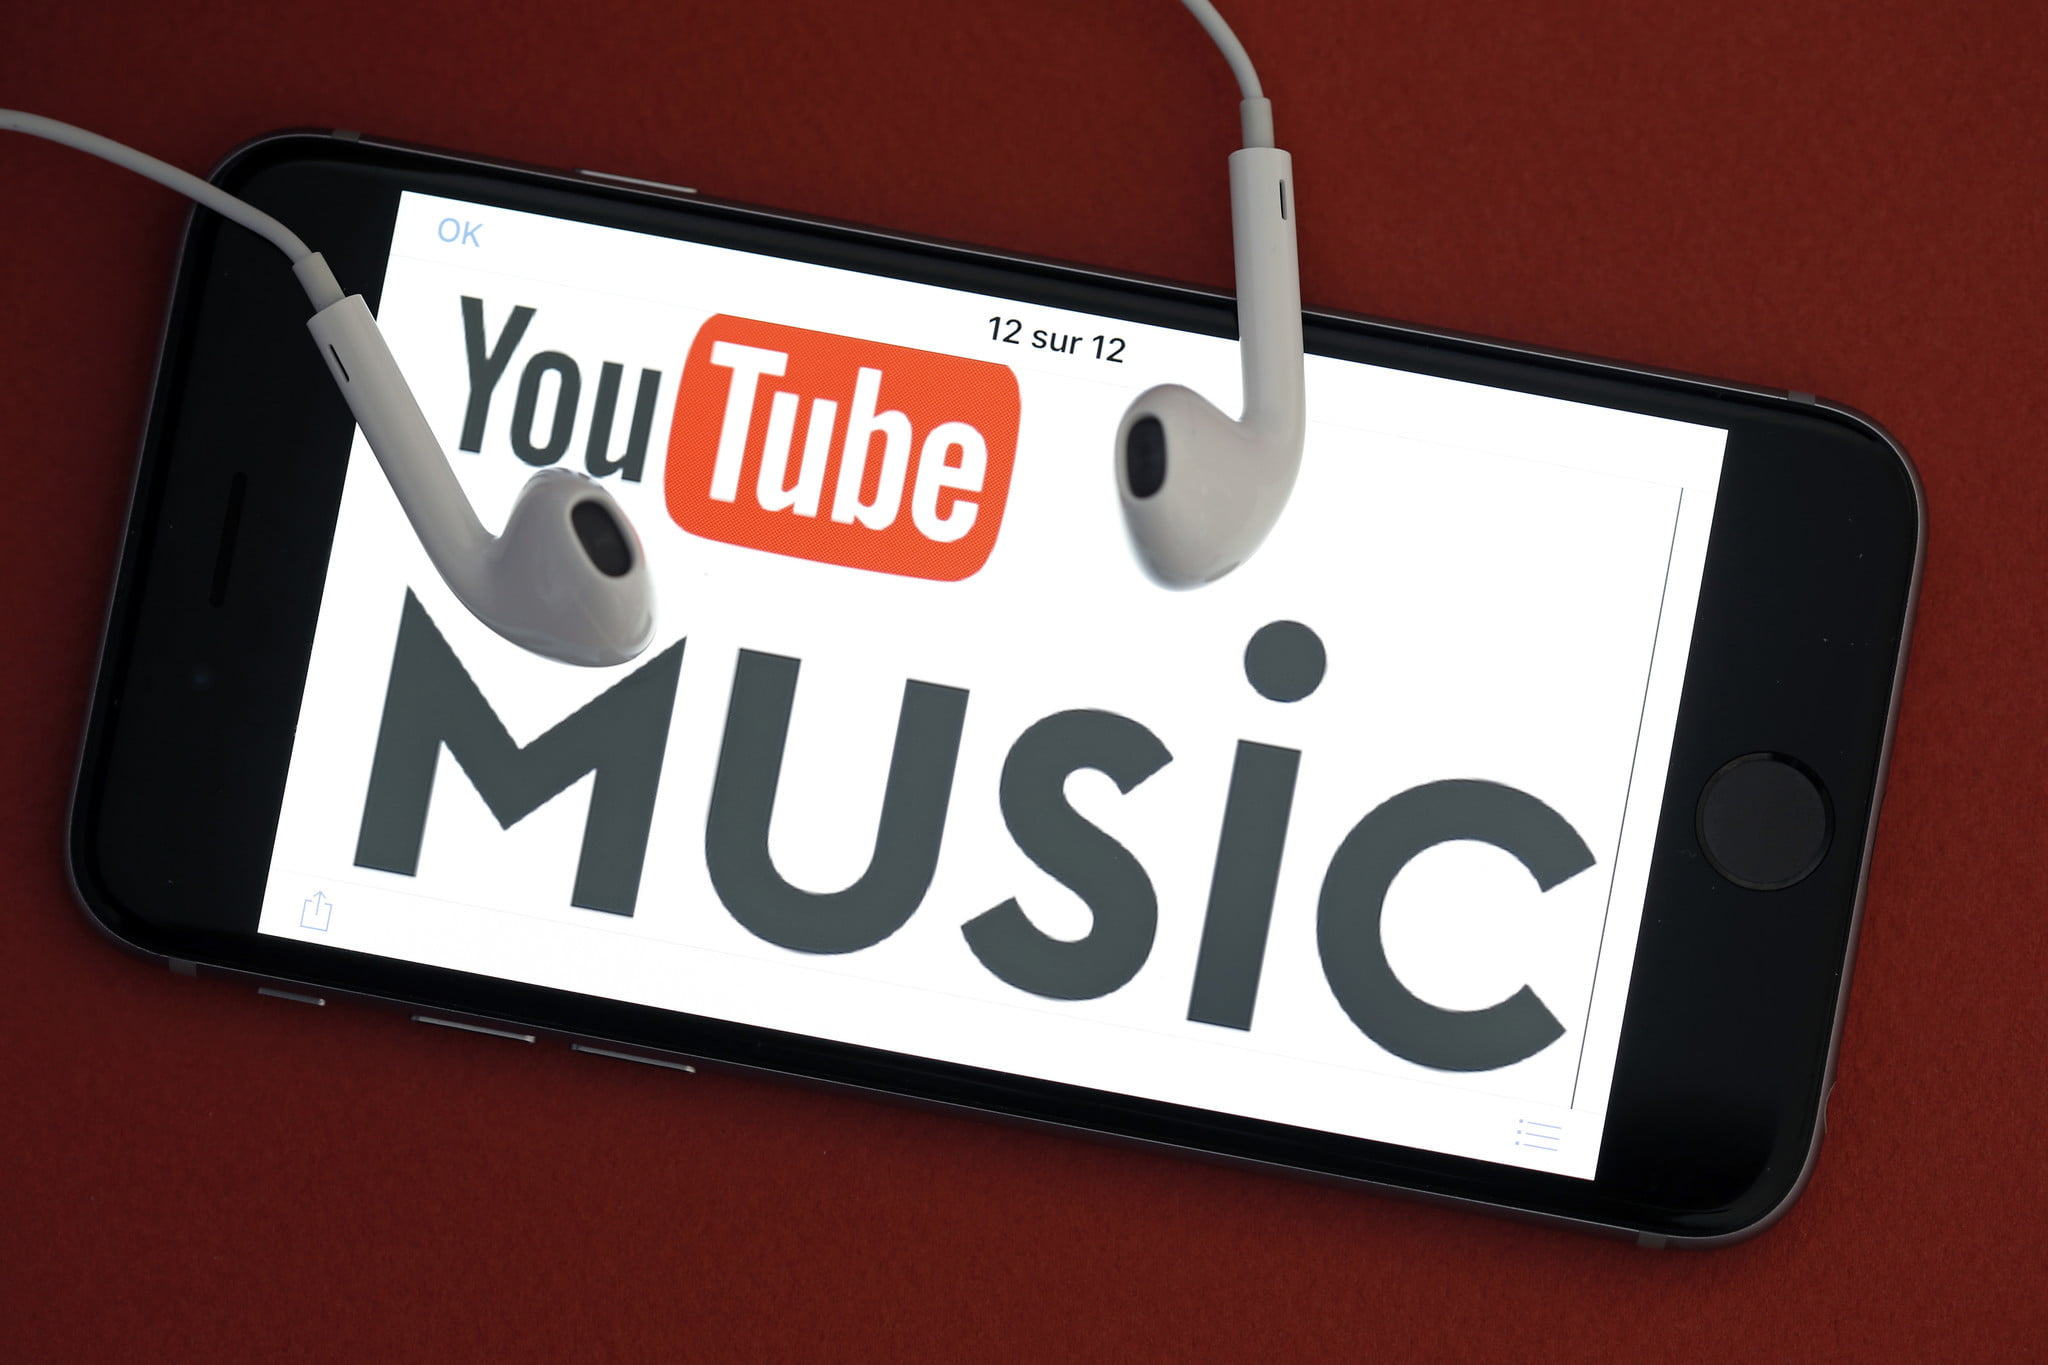 YouTube Music Streaming Service Launched After Arrival Of